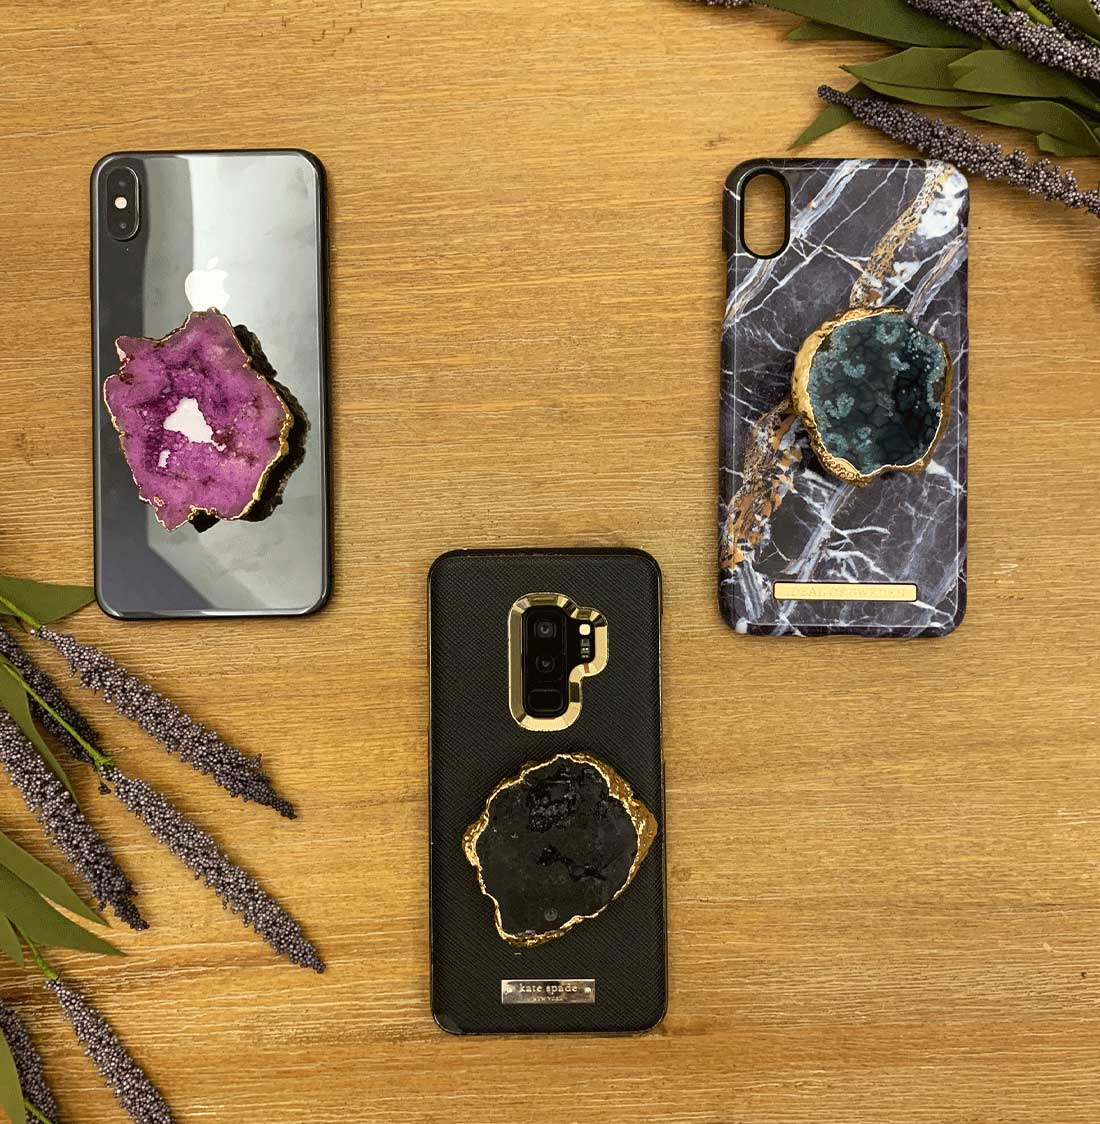 Gold plated Agate,Phone grip Cap,Phone stand Cap,Phone Socket Cap,Agate slices,Agate,Gold plated,Black,Brown